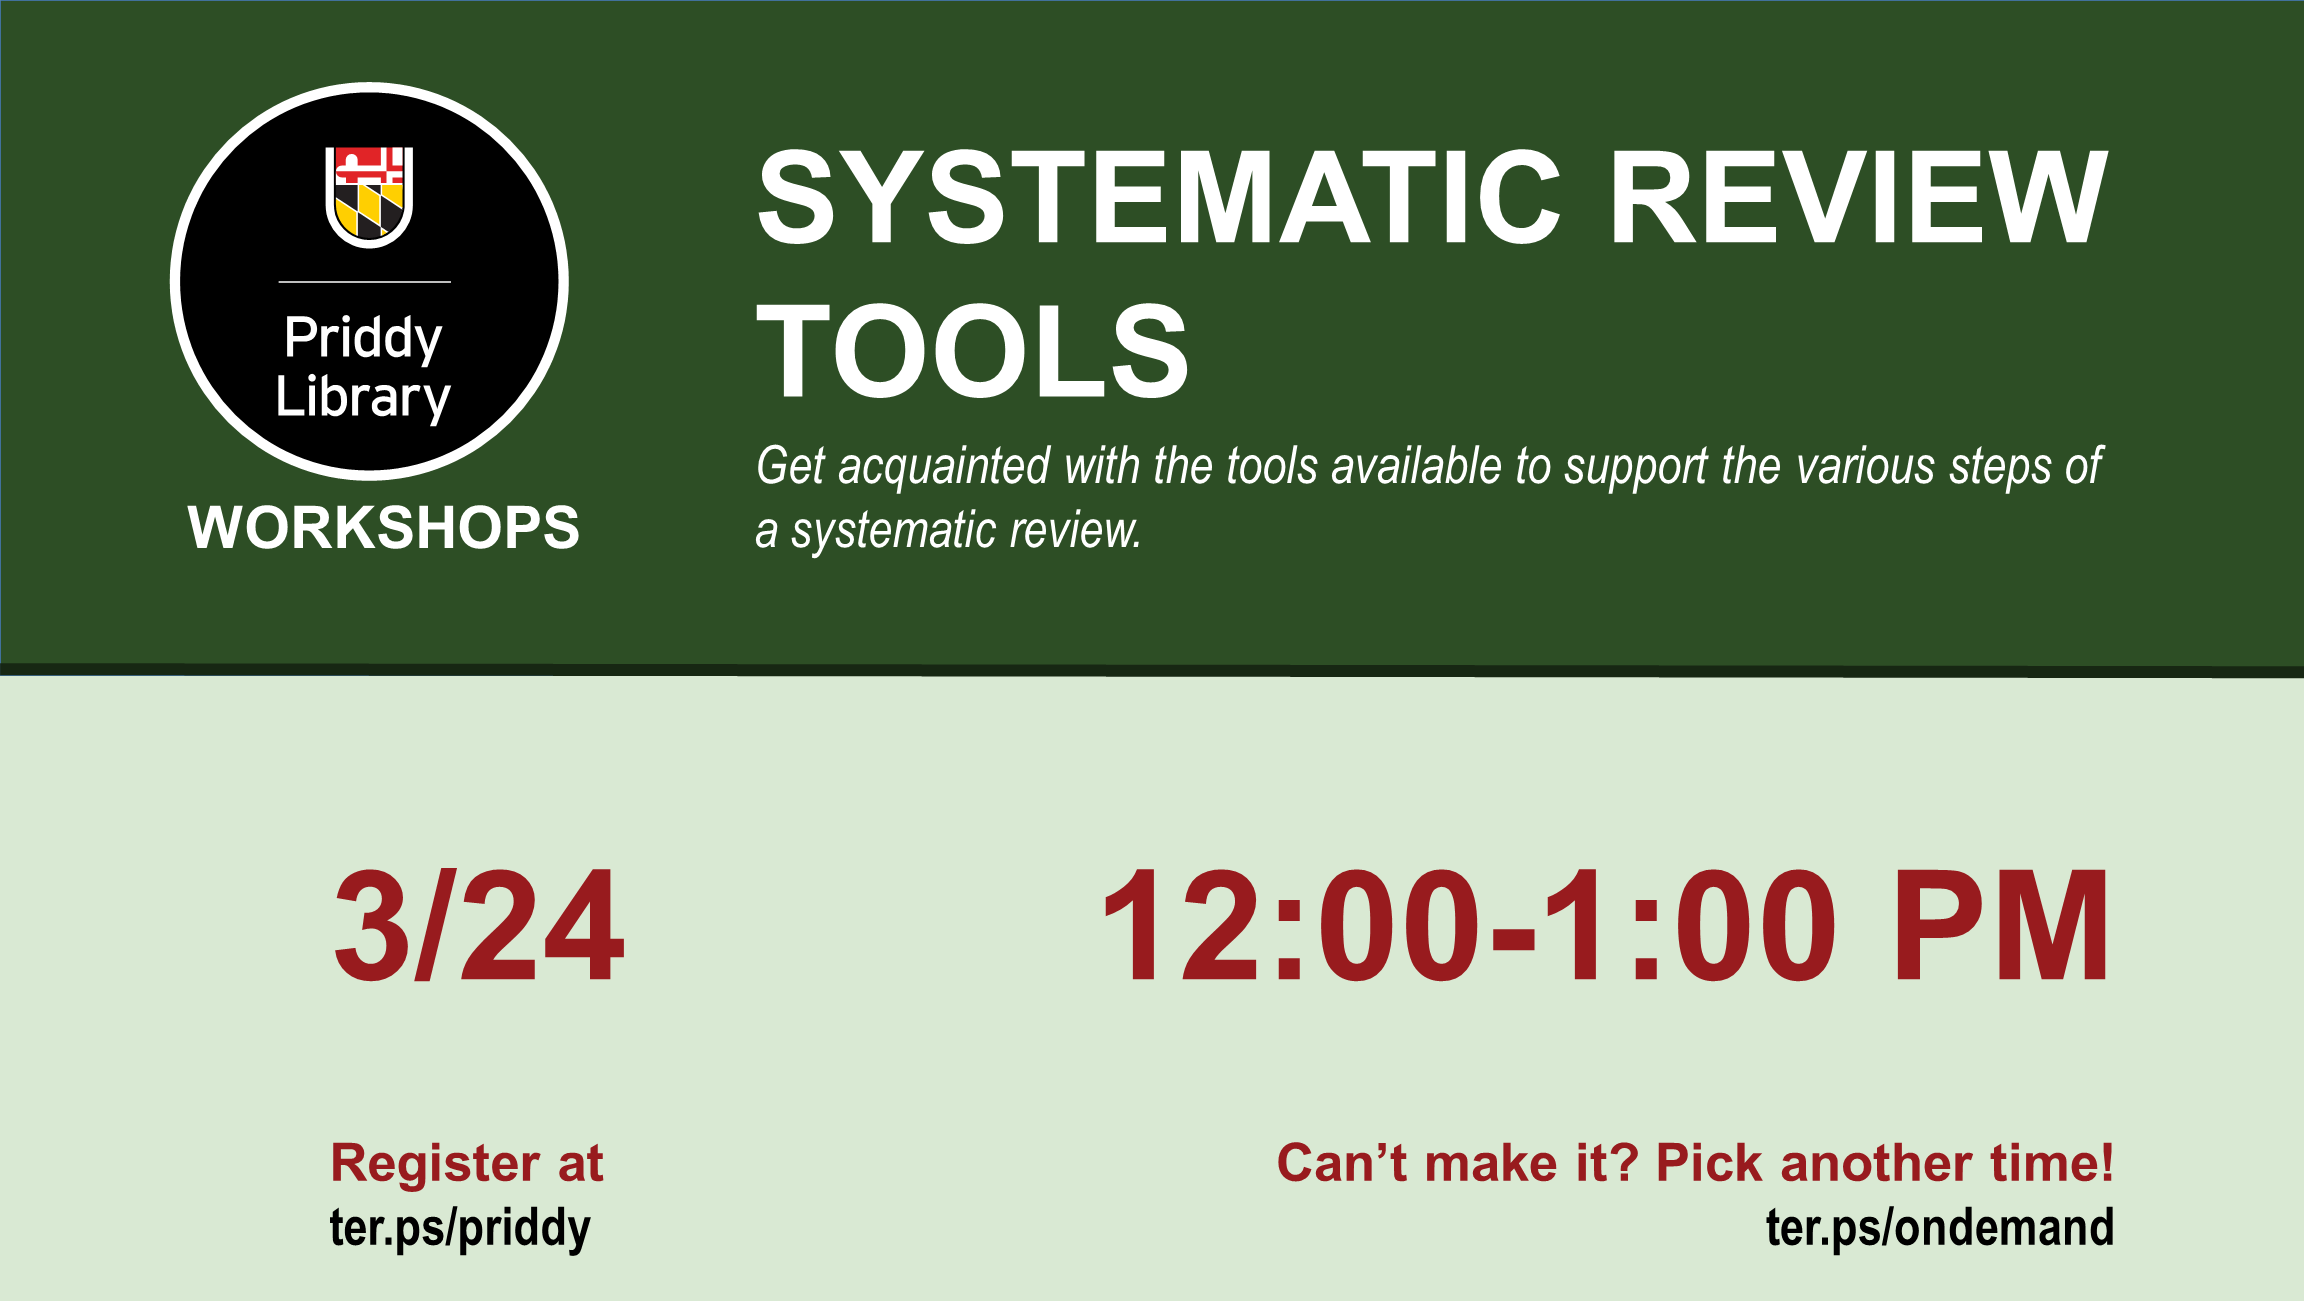 Systematic Review Tools flyer